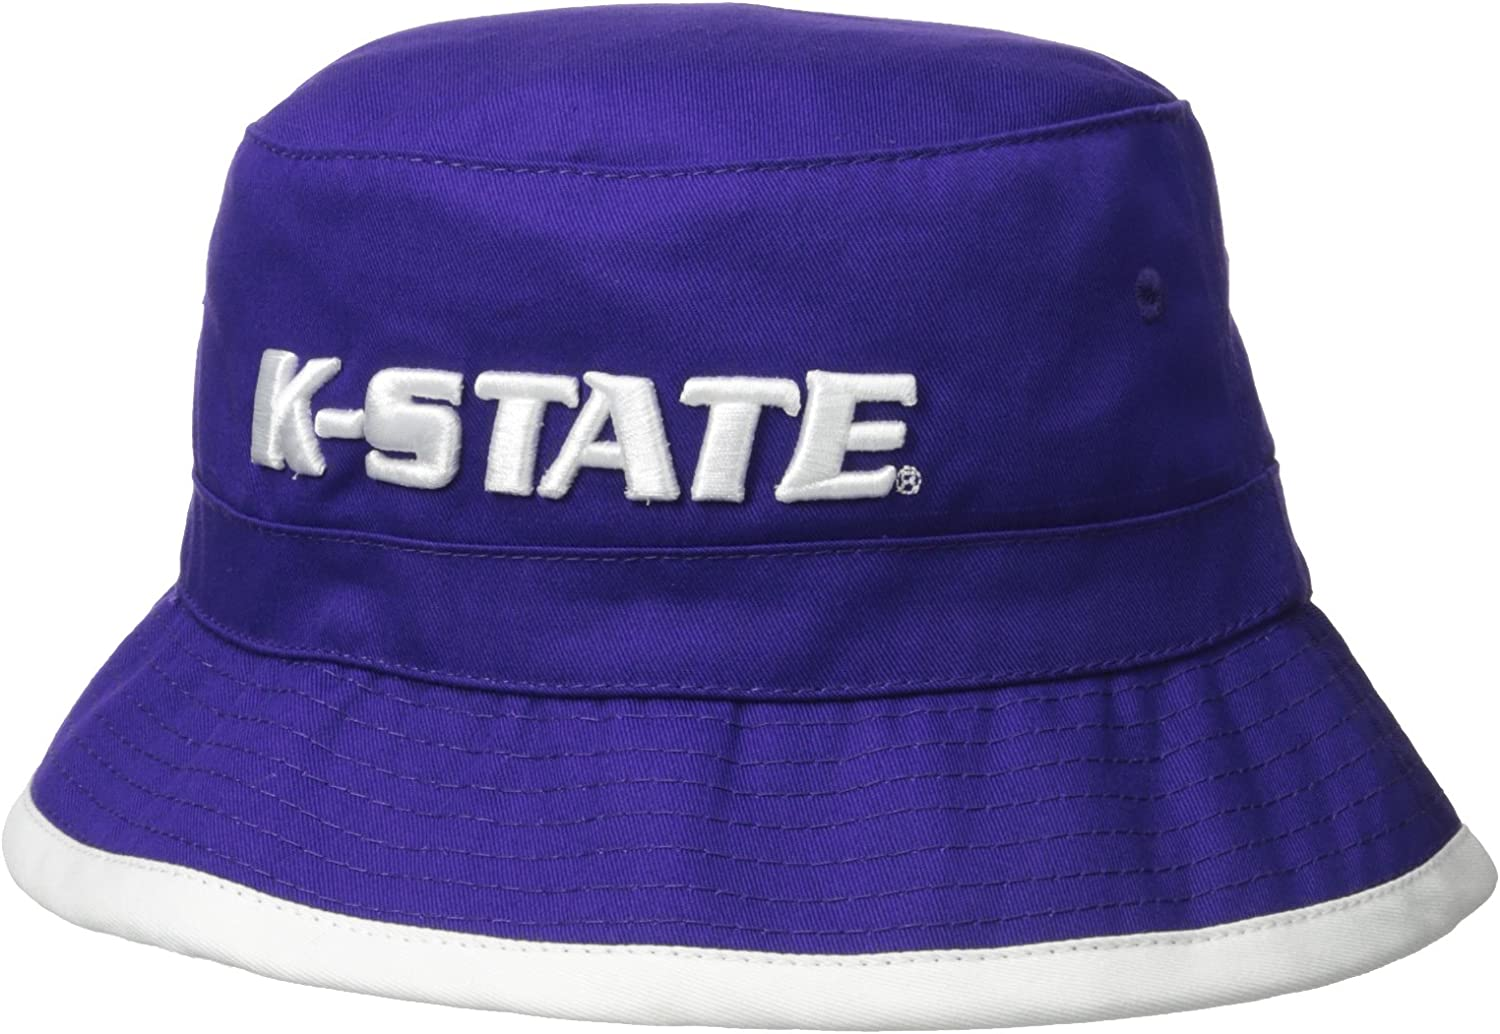 University of Kansas State K-State Wildcats NCAA Bucket Jungle Safari Officially Licensed Fishing Hat